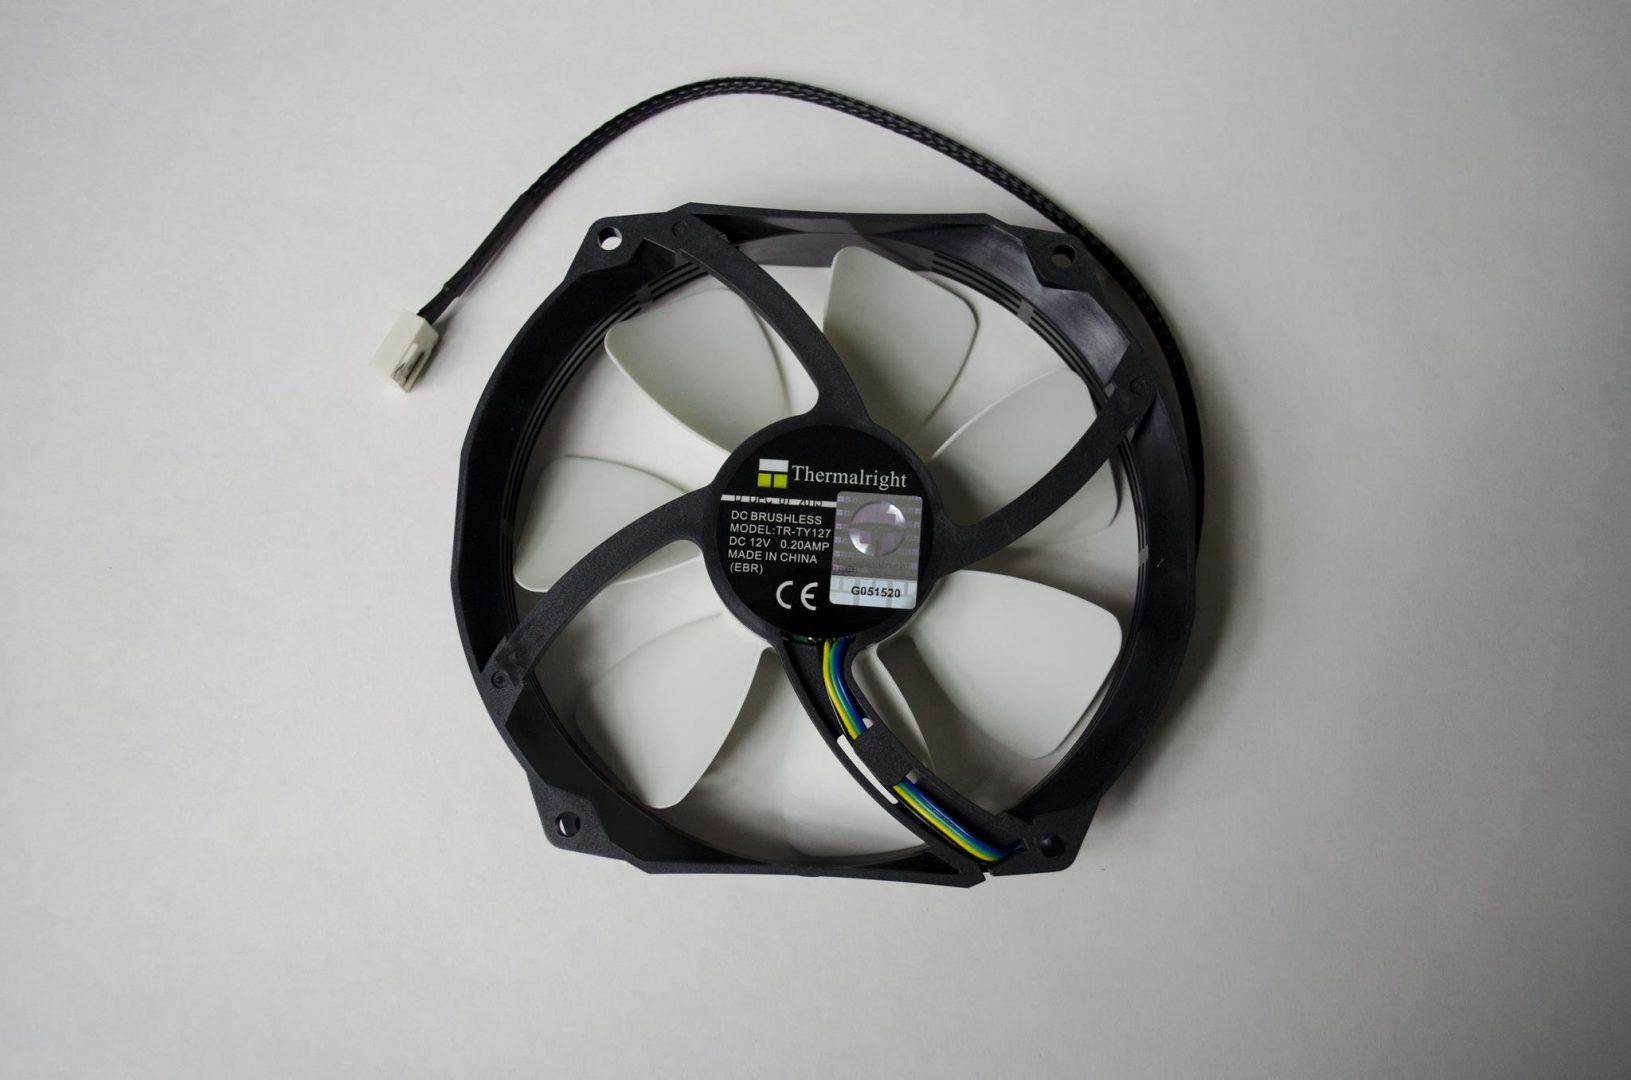 thermalright-macho-120-sbm-cpu-cooler-review-_5